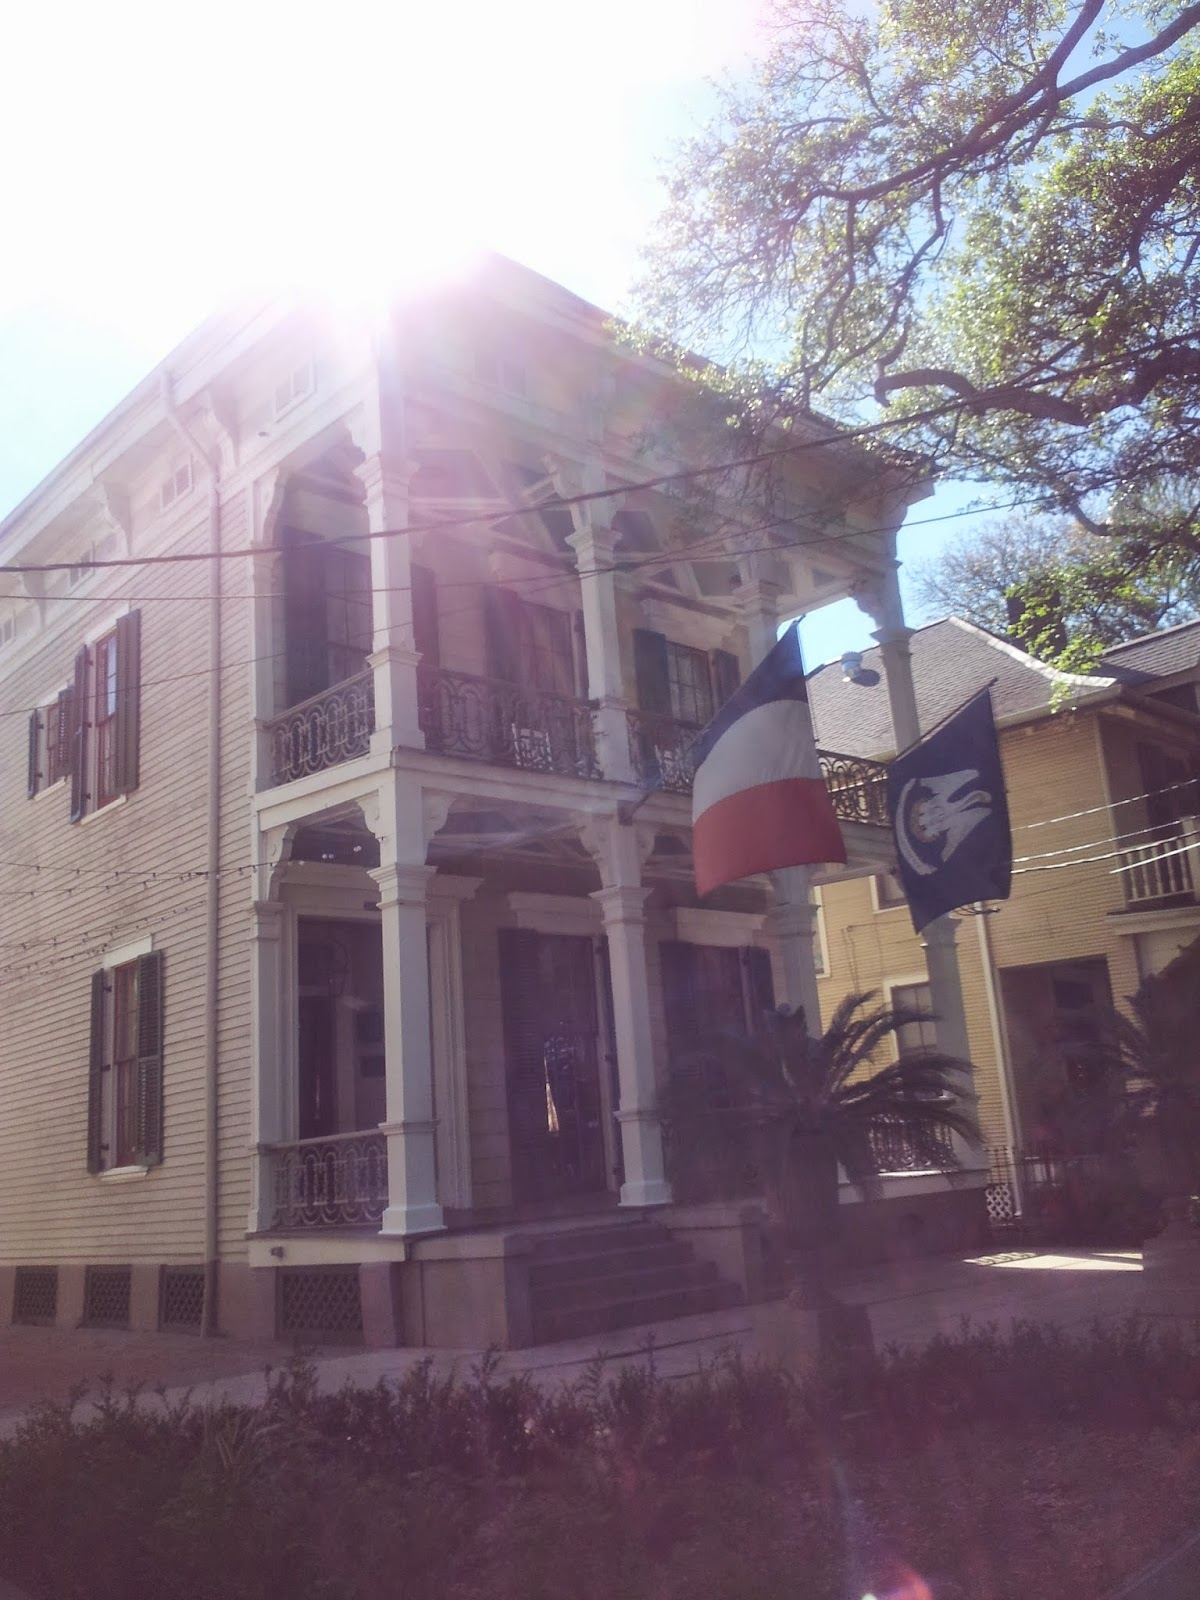 Edgar Degas House, New Orleans, sun streaming